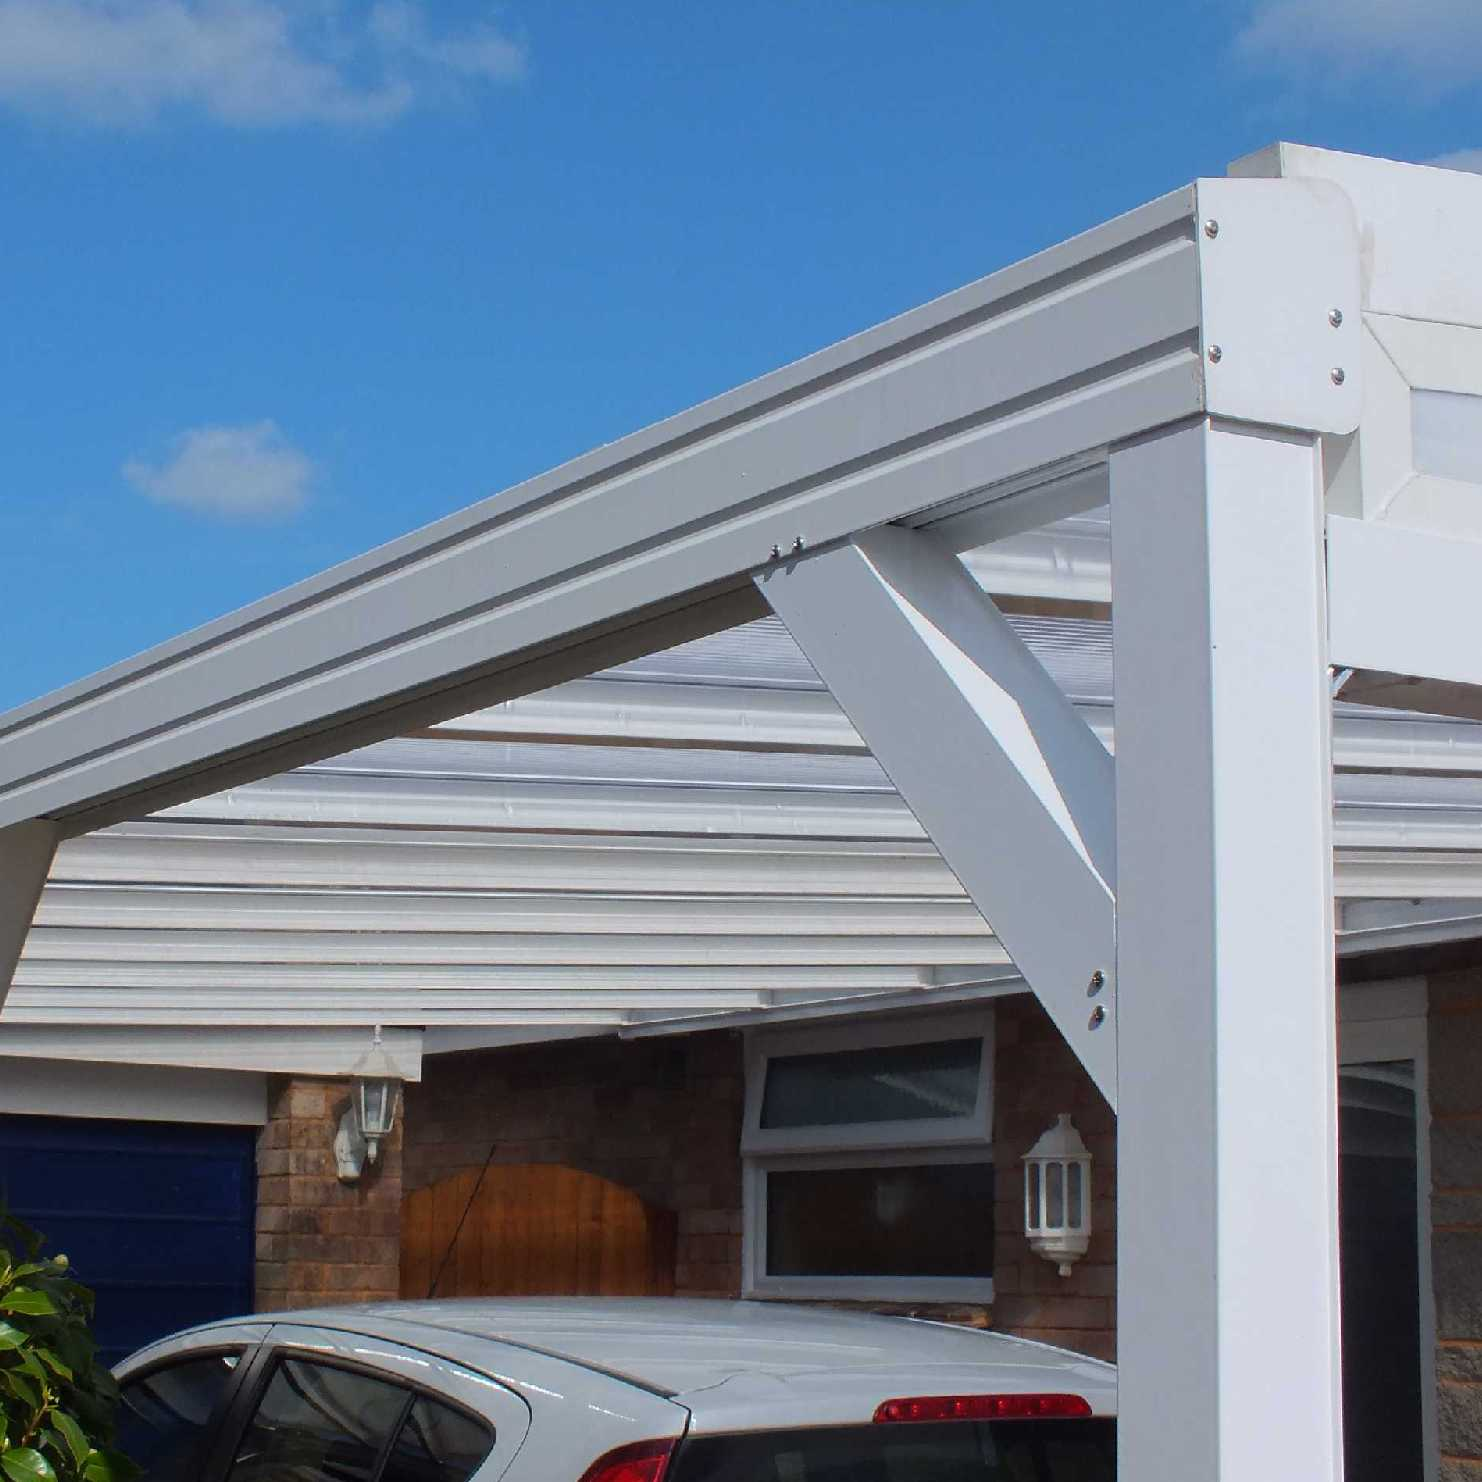 Buy Omega Smart White Lean-To Canopy with 16mm Polycarbonate Glazing - 12.0m (W) x 2.5m (P), (5) Supporting Posts online today